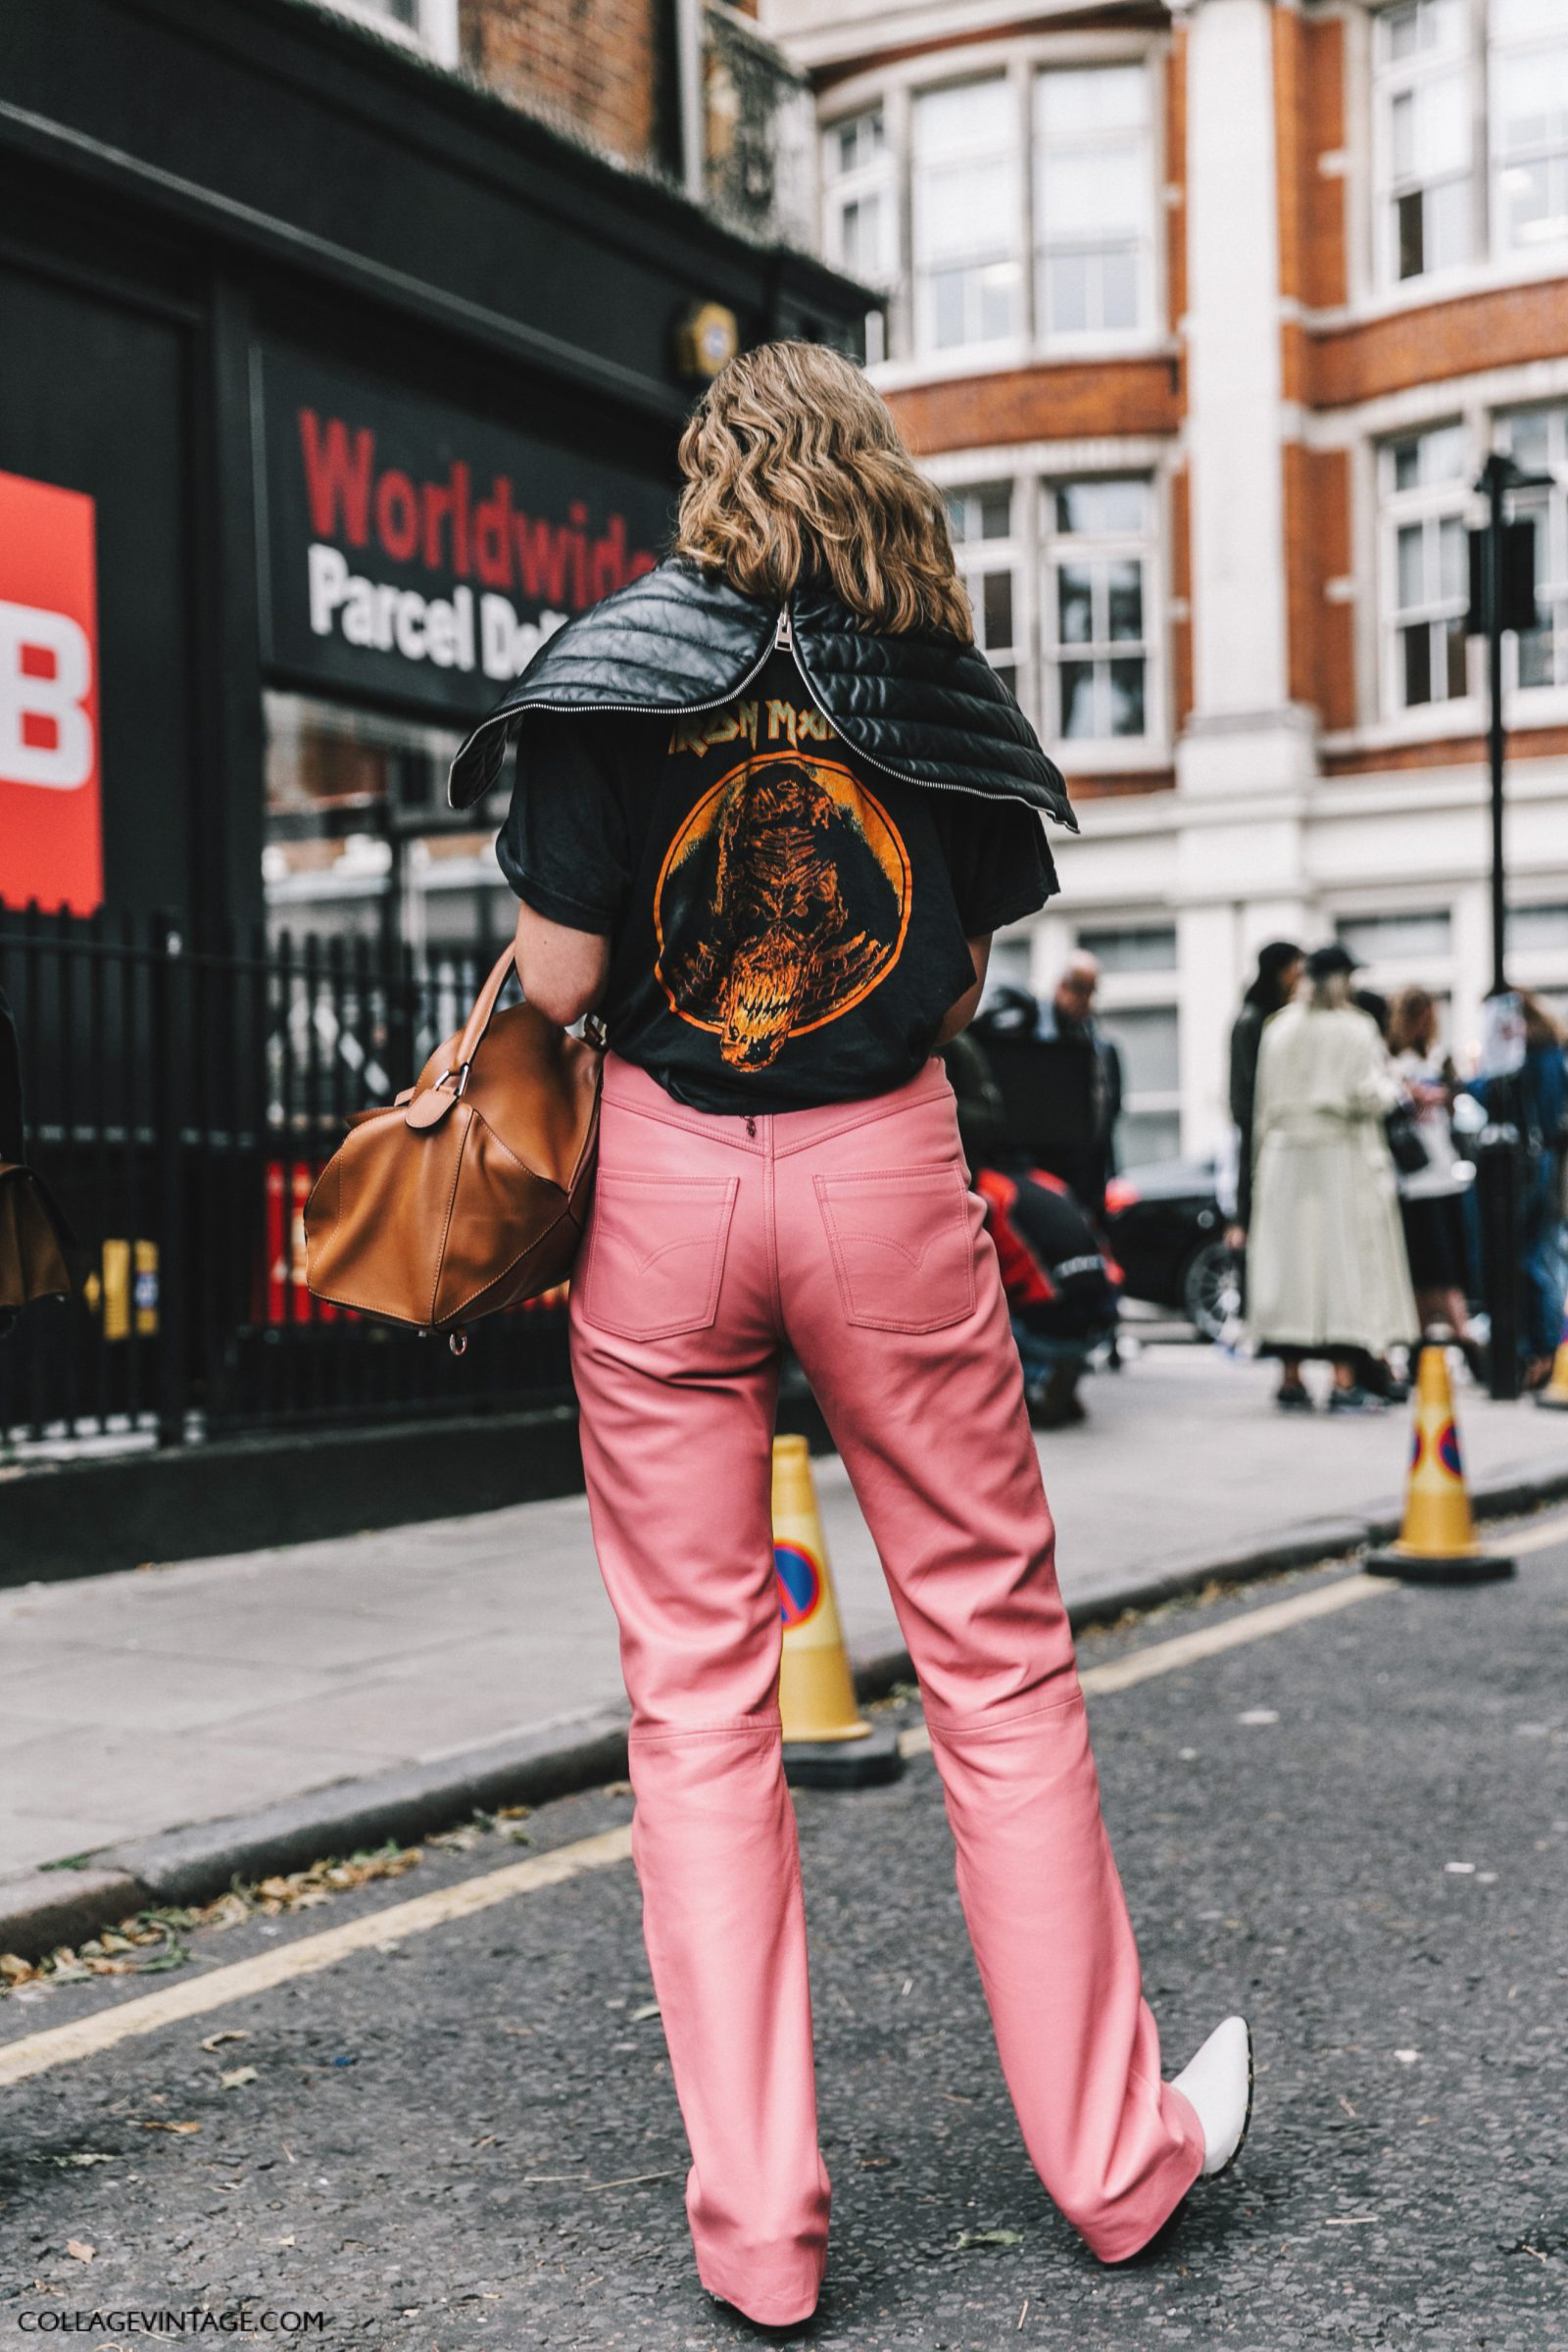 lfw-london_fashion_week_ss17-street_style-outfits-collage_vintage-vintage-jw_anderson-house_of_holland-199